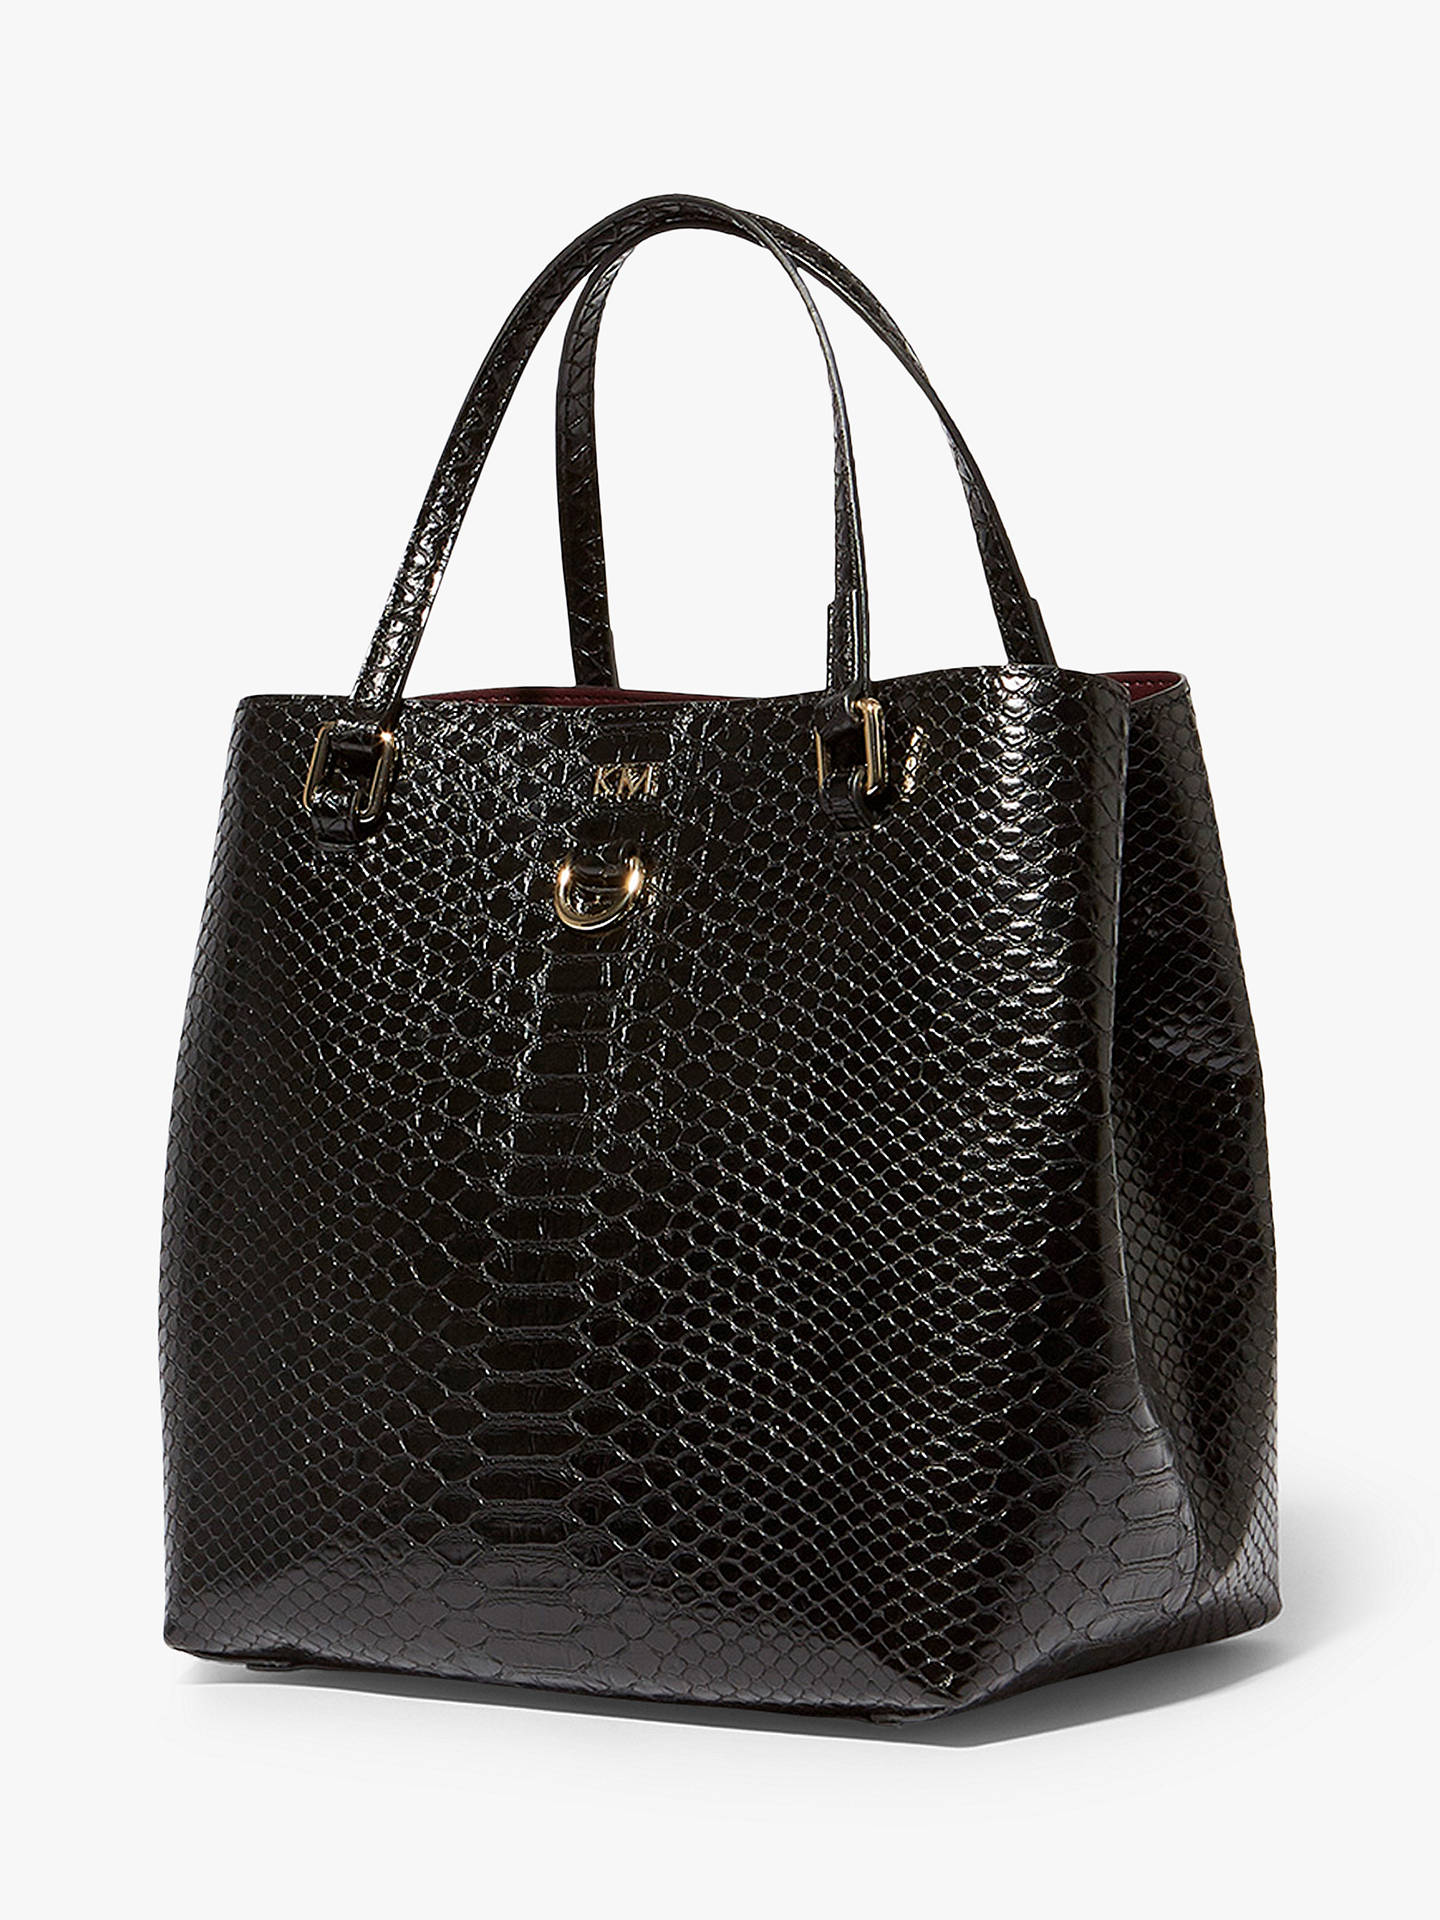 9009e7ac5df ... Buy Karen Millen Snakeskin Shoulder Bag, Black Online at johnlewis.com  ...